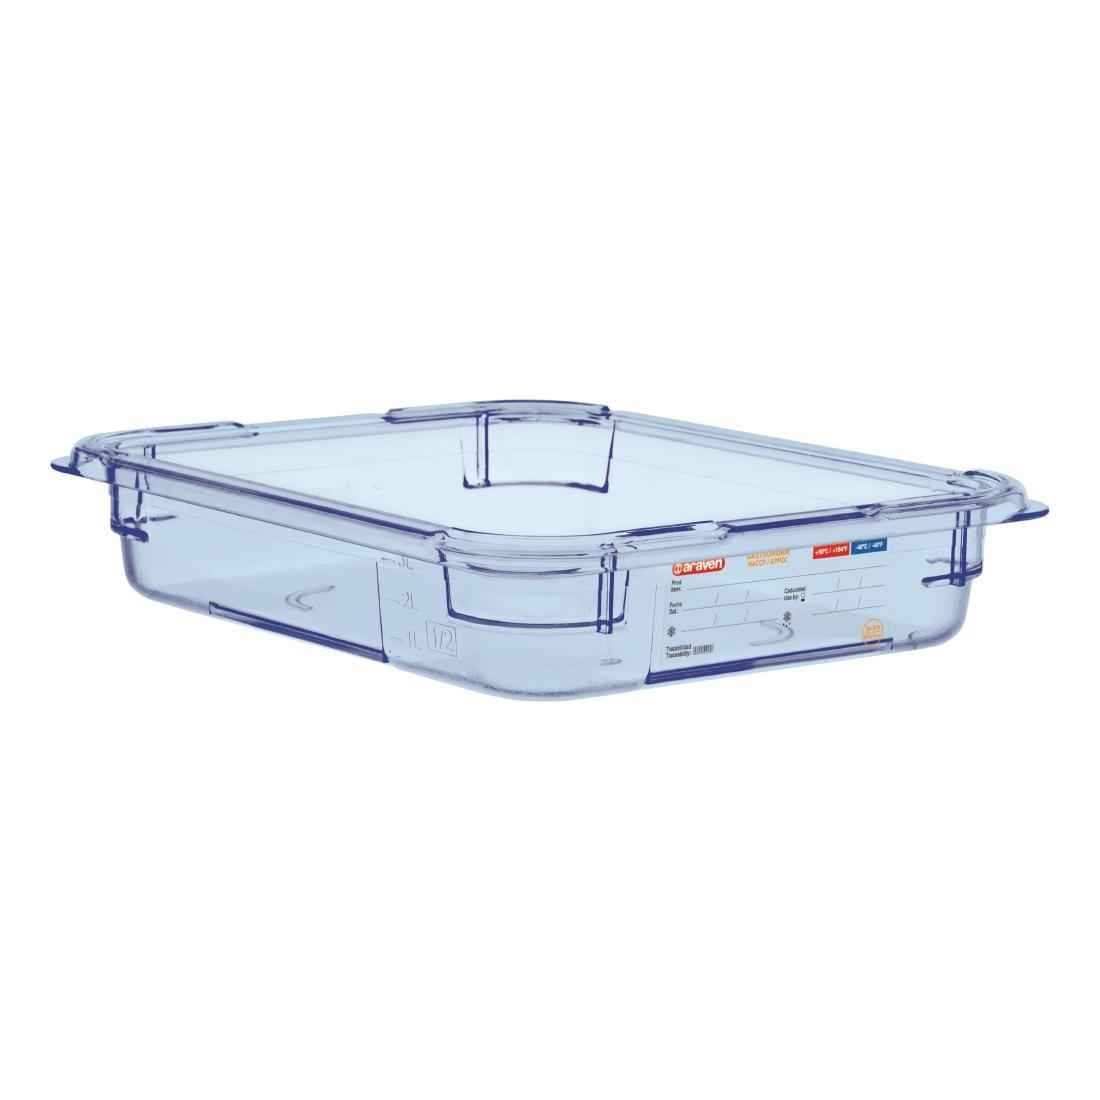 Image of Araven ABS Food Storage Container Blue GN 1/2 65mm